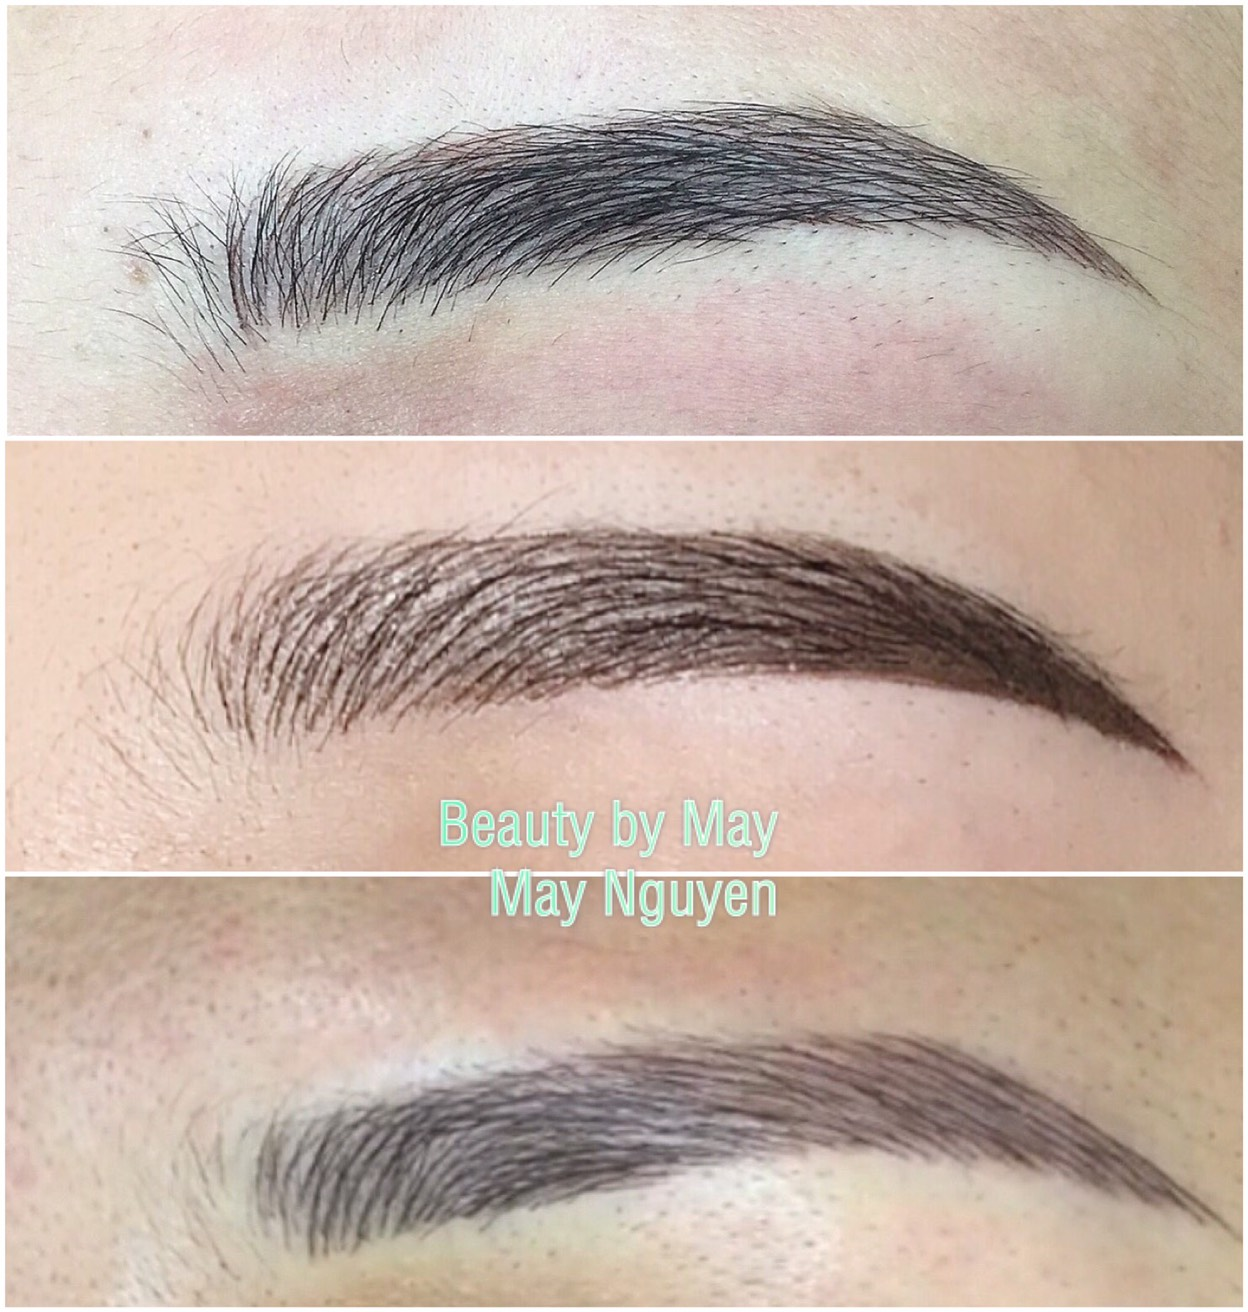 0f521daea62 beautybymay.com - Brow Microblading - Makeup Artist, Eyelash Extension,  Nail, Airbrush, Massage, Flower, Hawaii